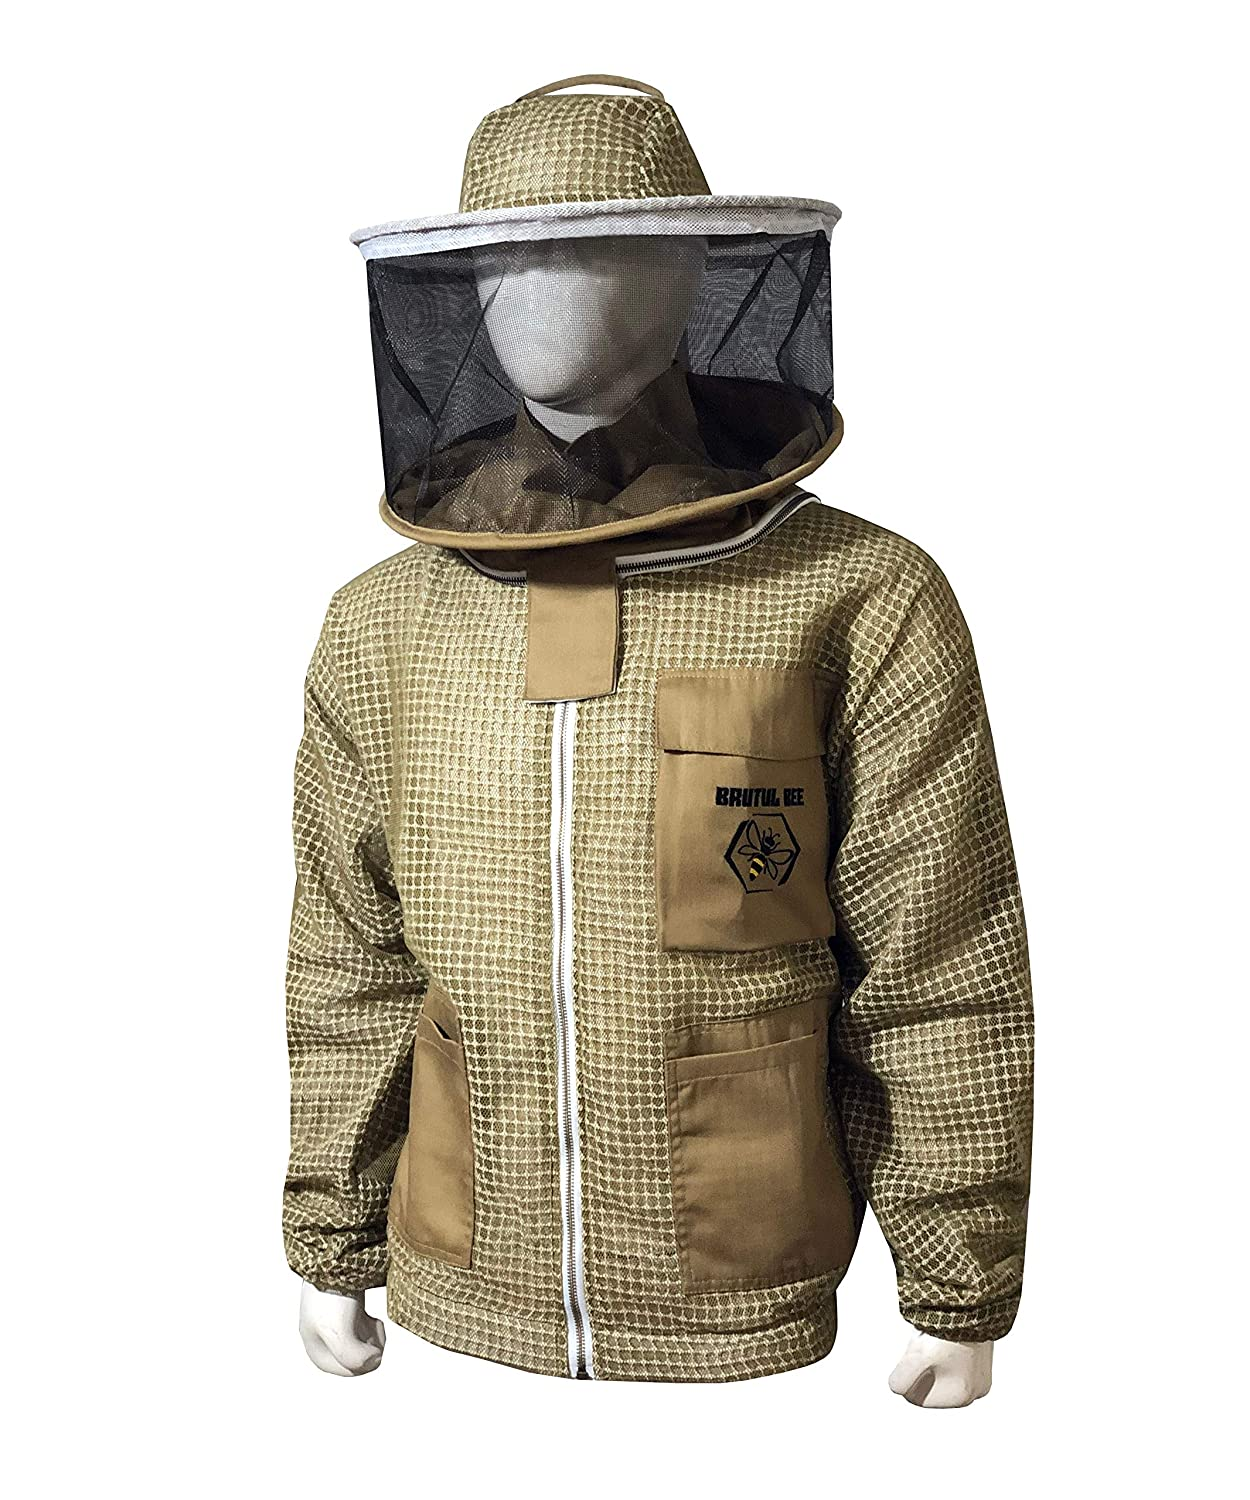 Brutul Bee Seattle Mall 3 Layer Courier shipping free shipping Beekeeping Fully Ventilated Protection Jacket